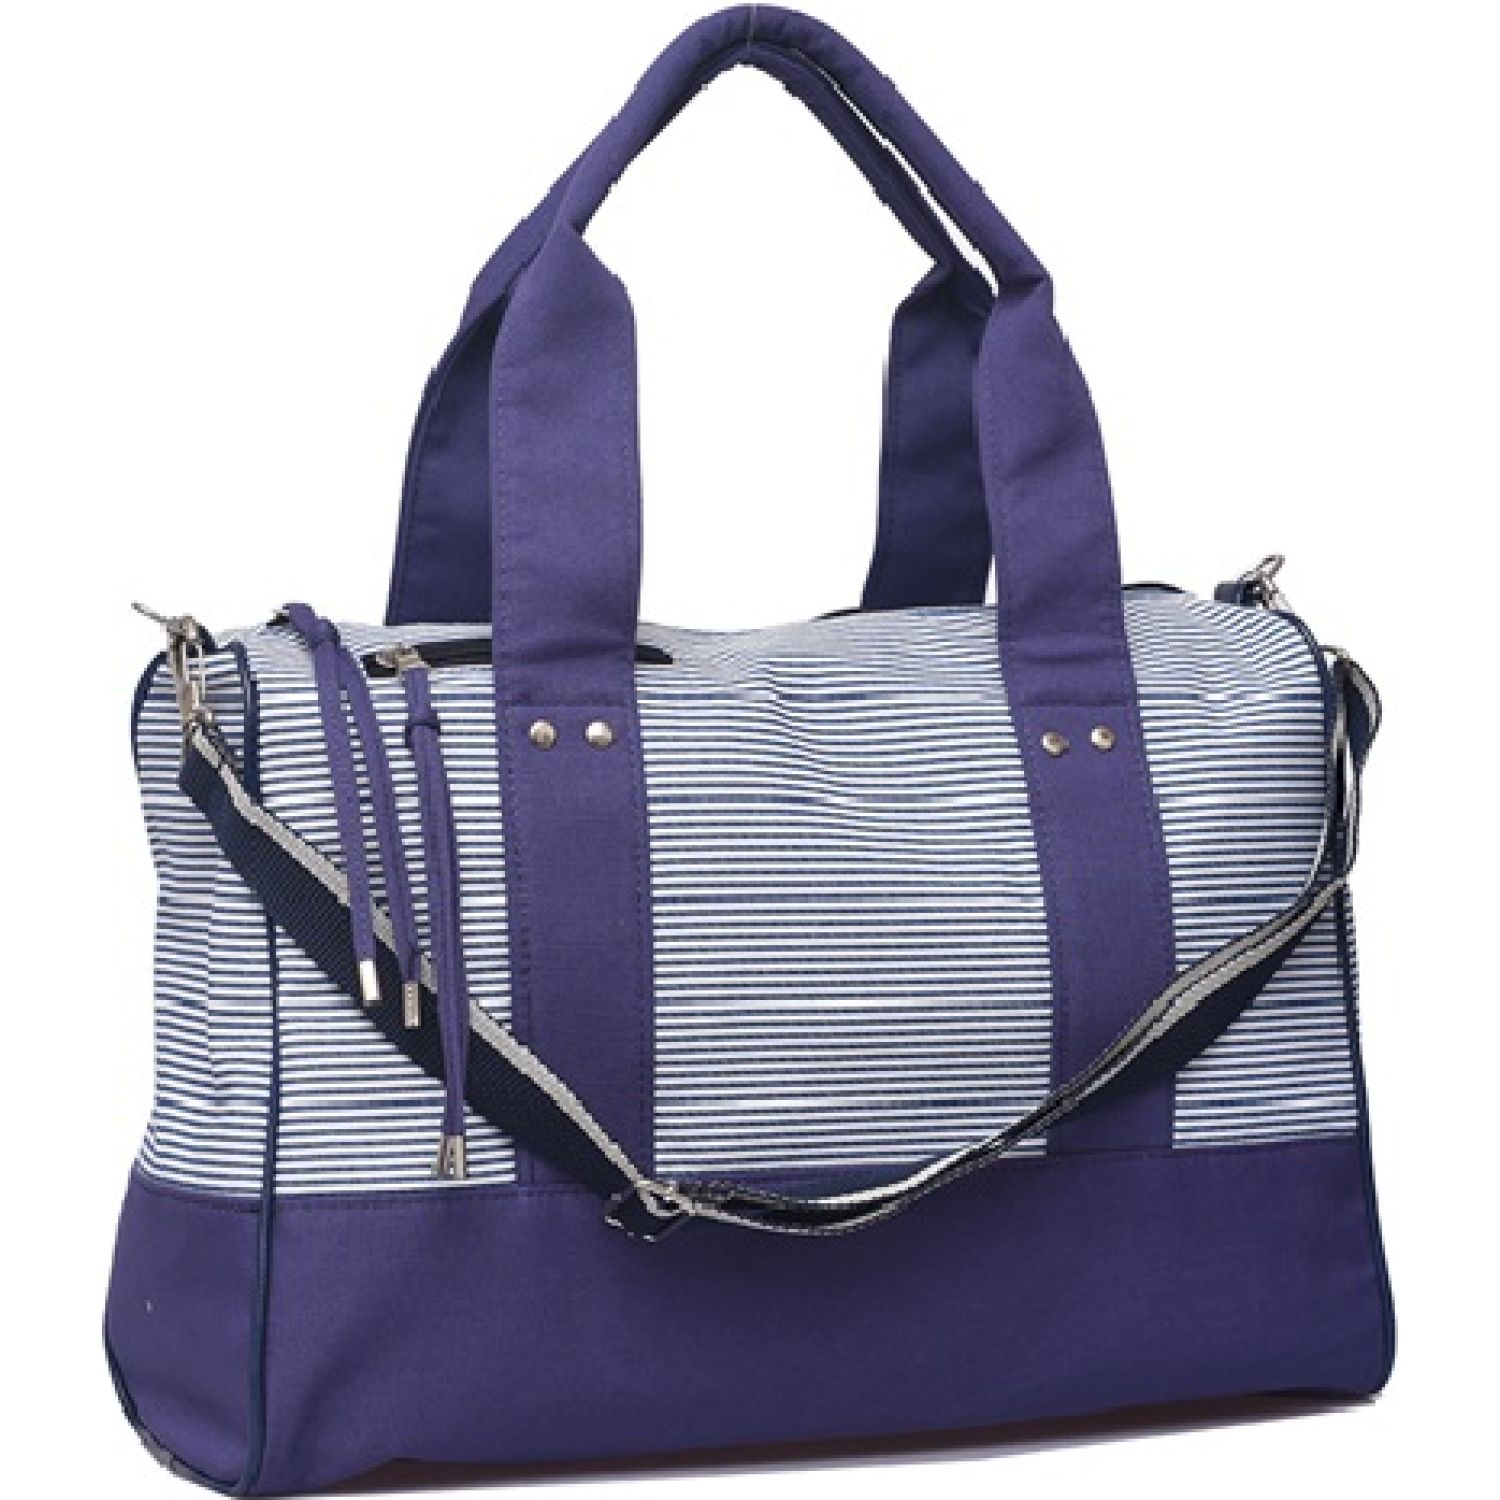 MATRIONA Bolso Luxury Azul / blanco Totes